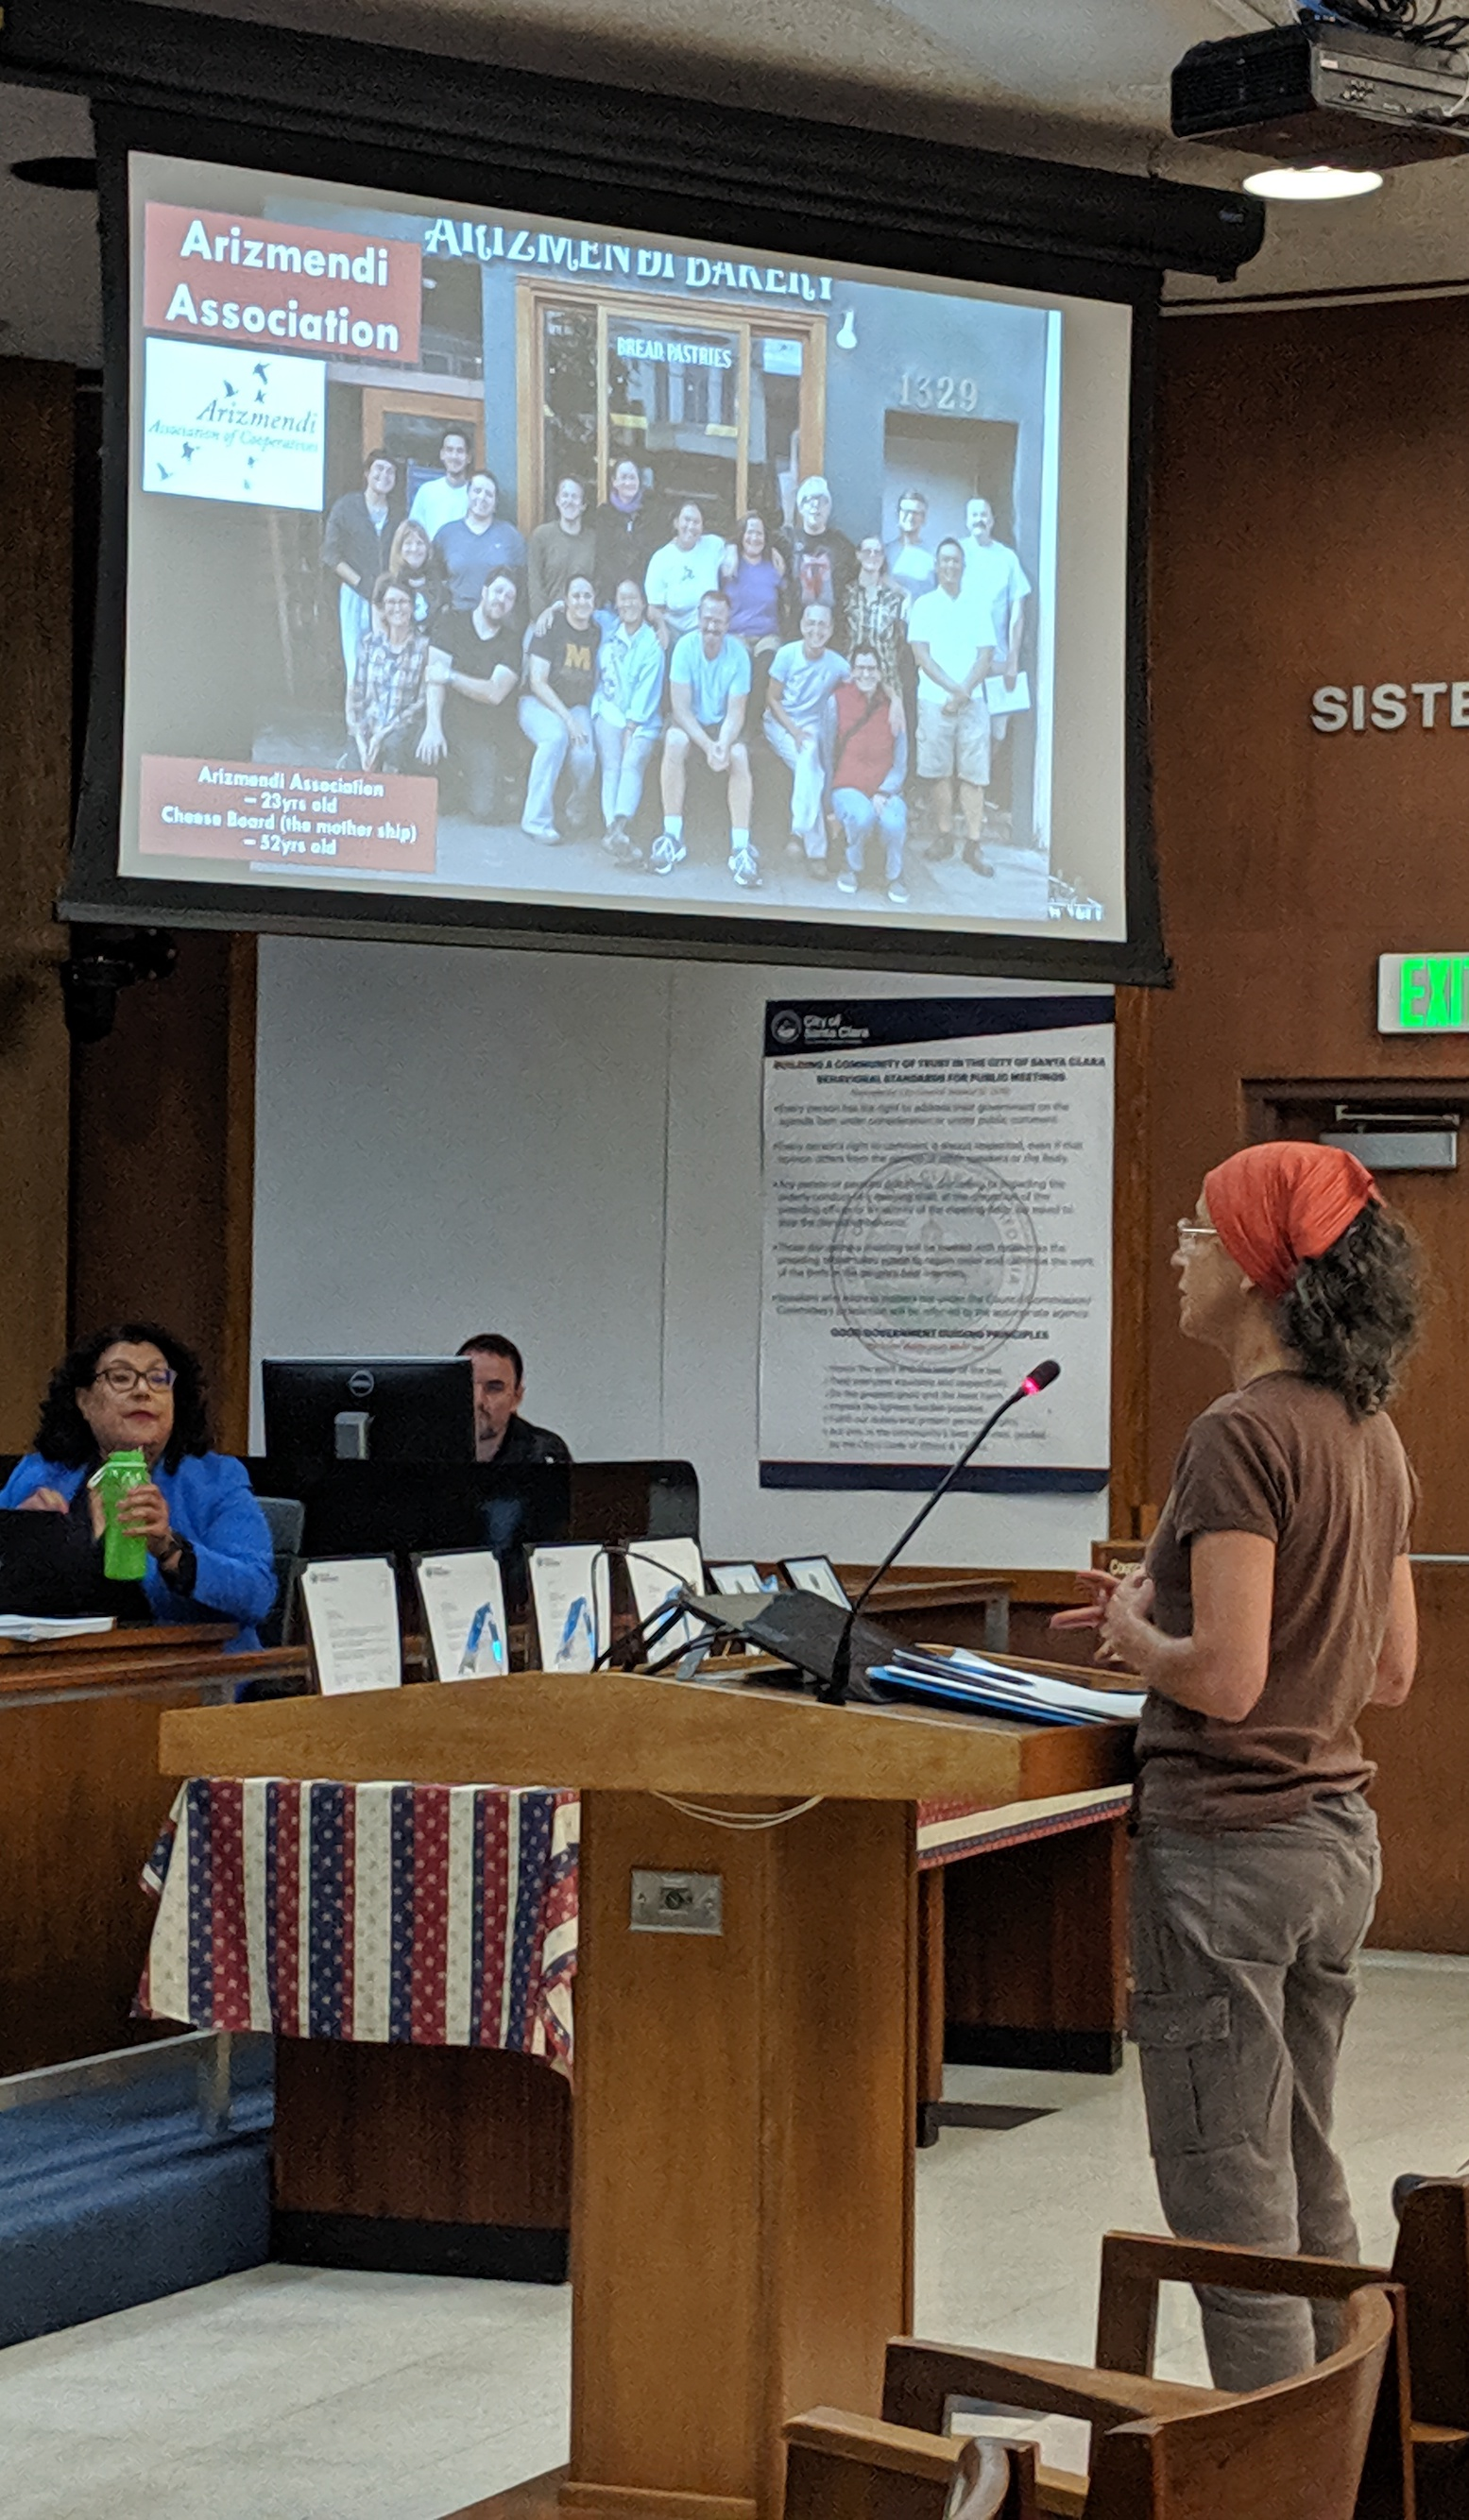 Sue from Arizmendi Association of Cooperatives